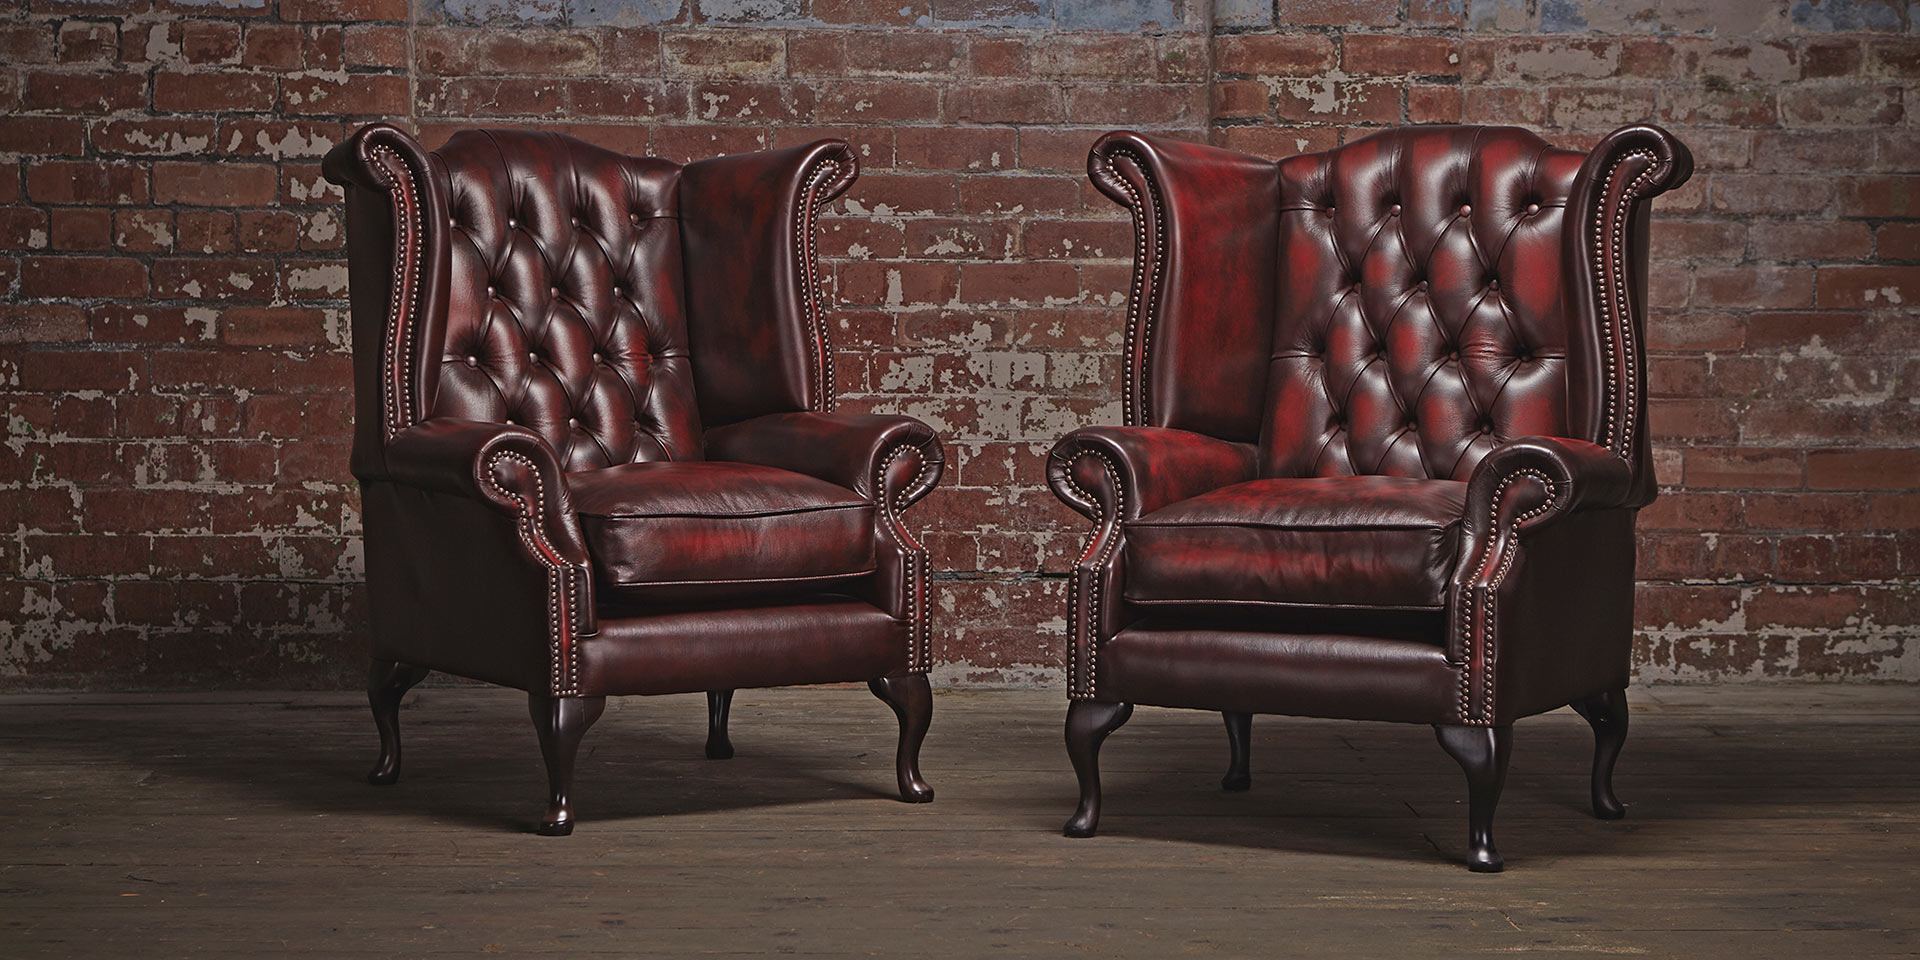 Chesterfield Chair For Rooms' Elegant And Classy Impression (Gallery 13 of 20)